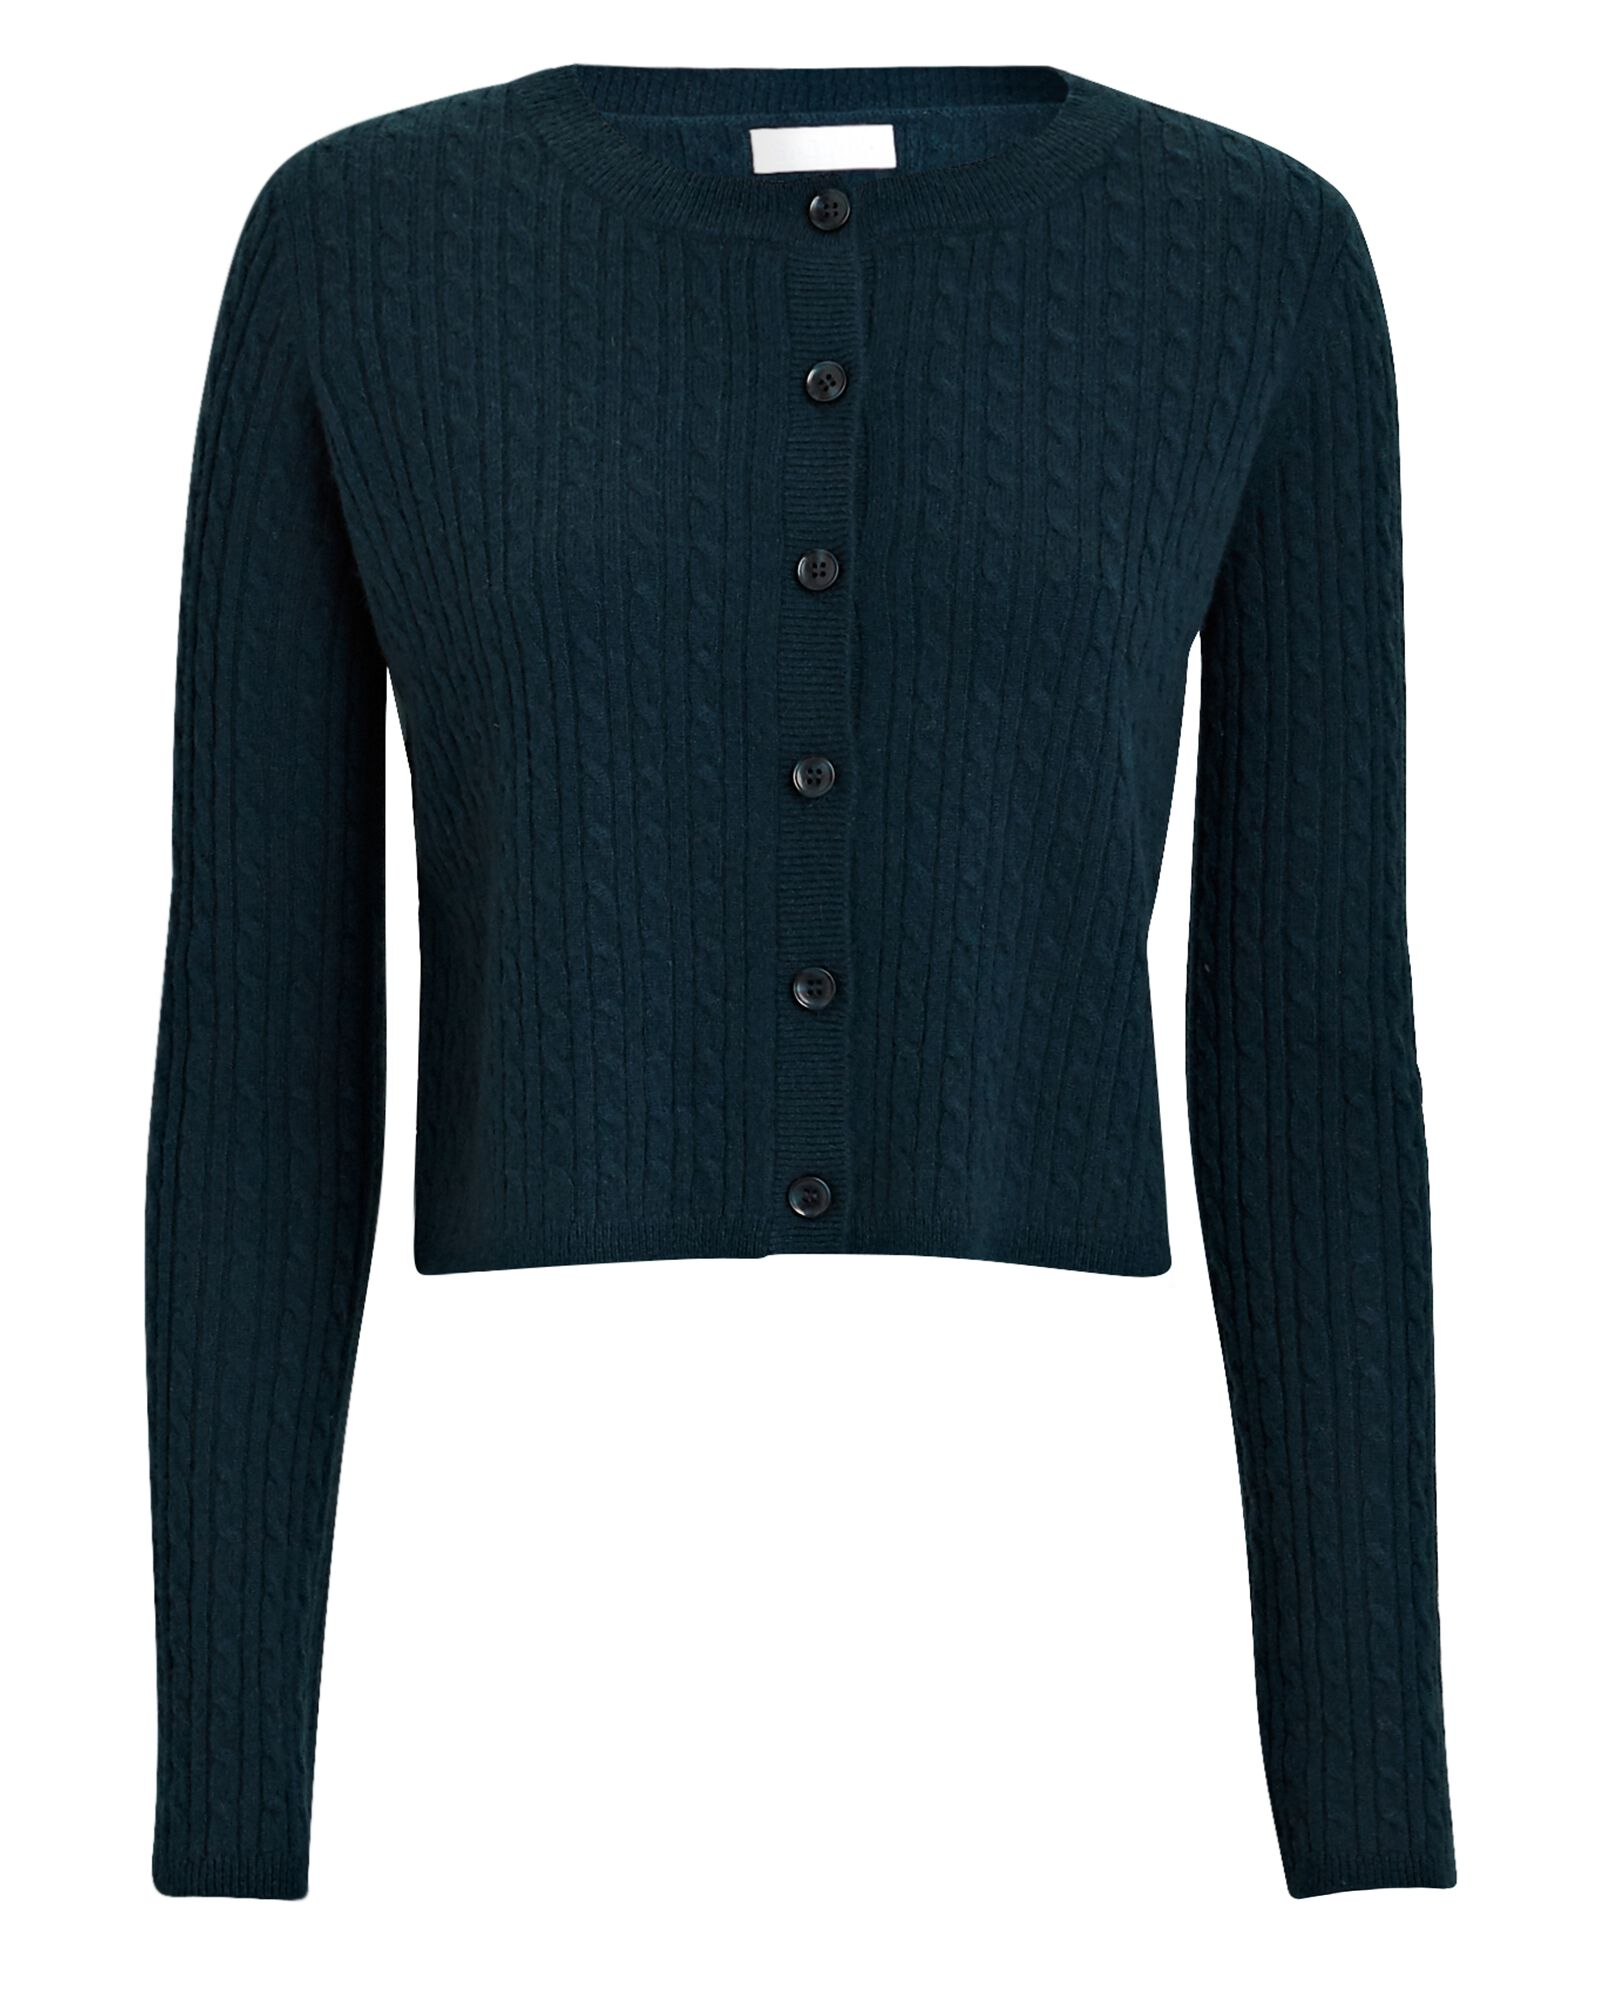 Cleo Cable Knit Cashmere Cardigan, GREEN, hi-res